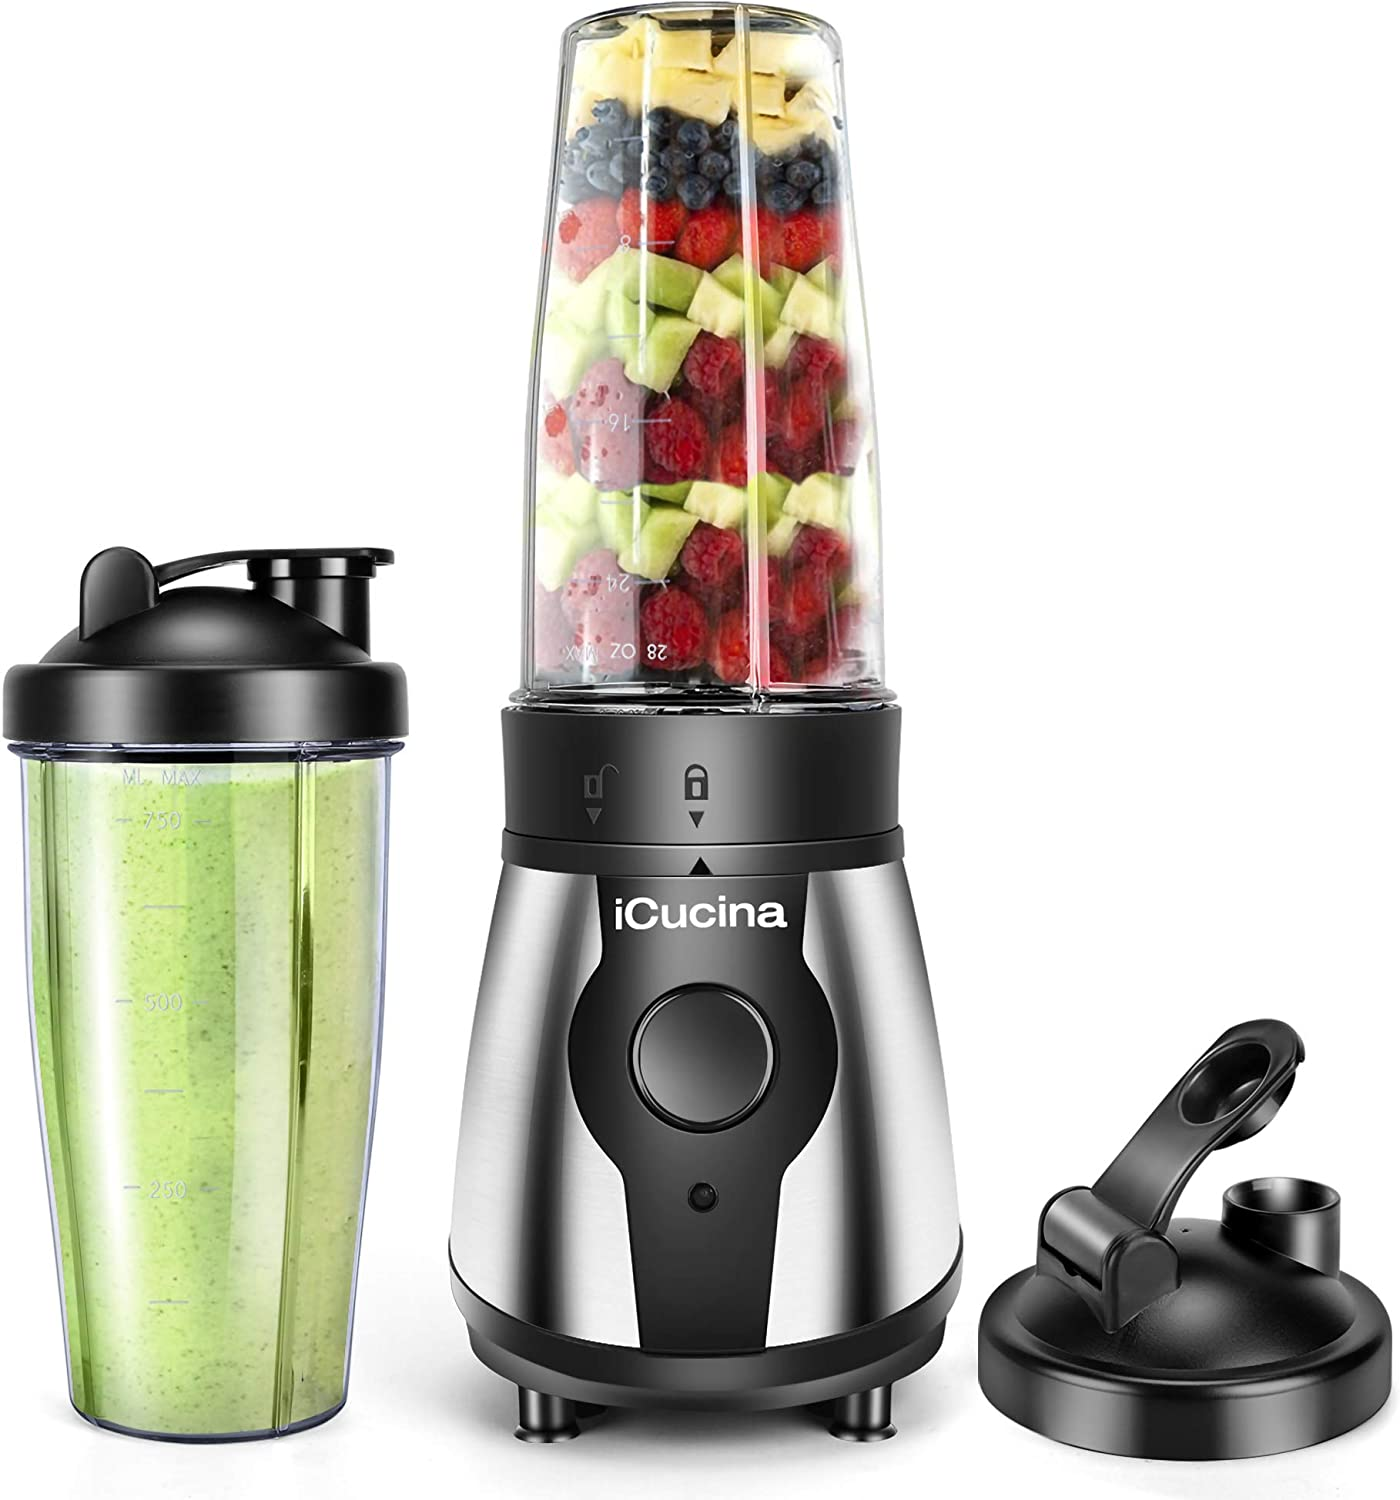 Icucina 300 Watt Personal Portable Bullet Blender for shakes and smoothies| Easy Clean Shake Blender with One-Button Operation |28 Ounce Blender Cups with To-Go Lids